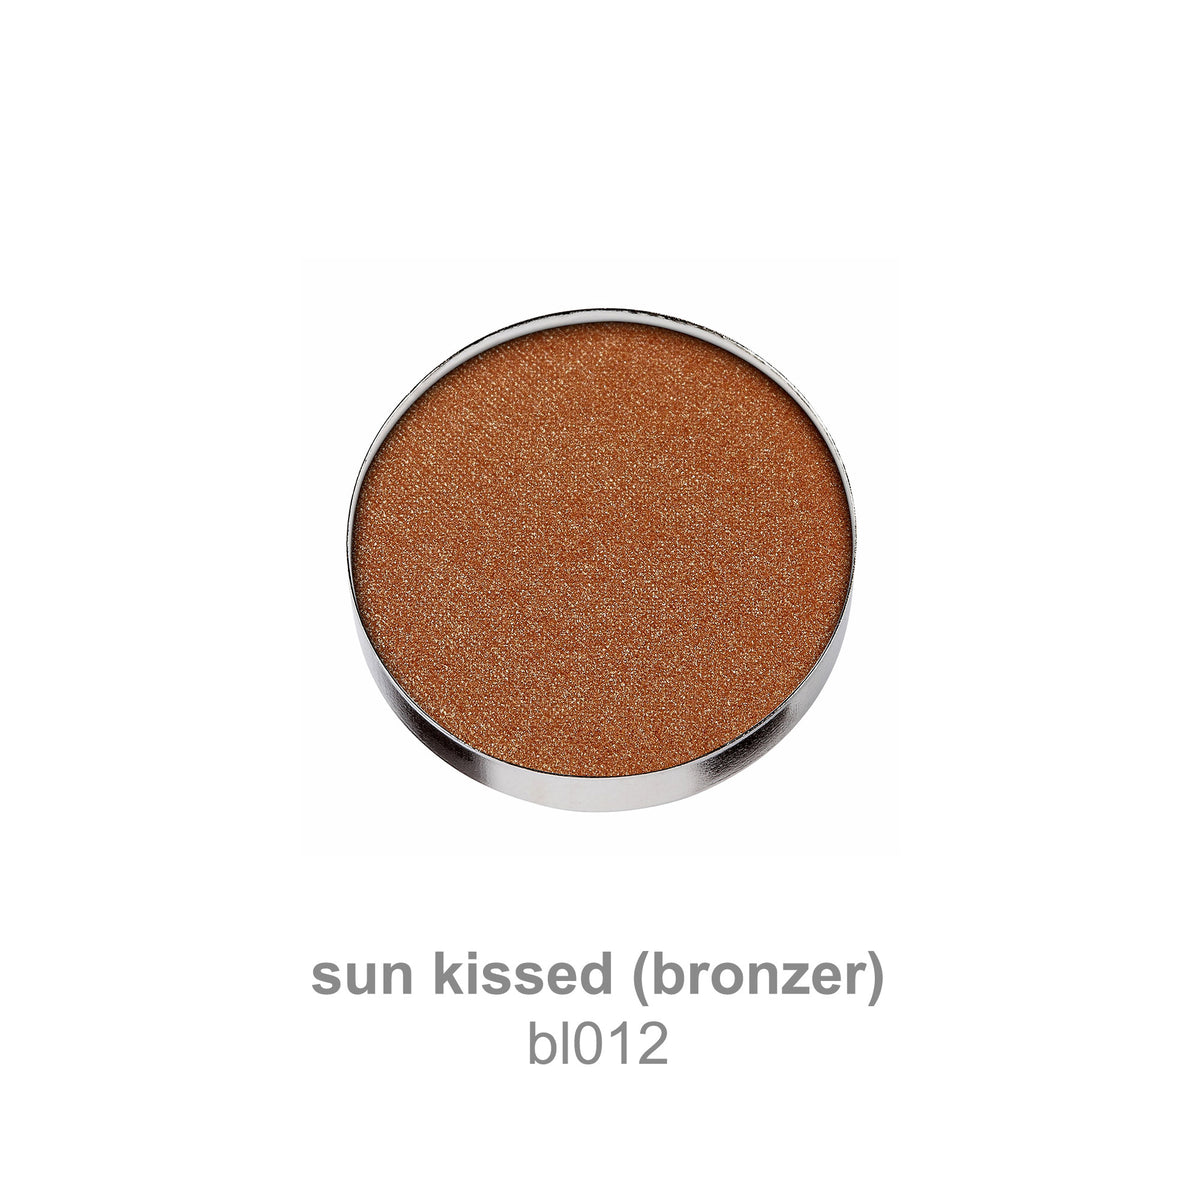 sun kissed bl012